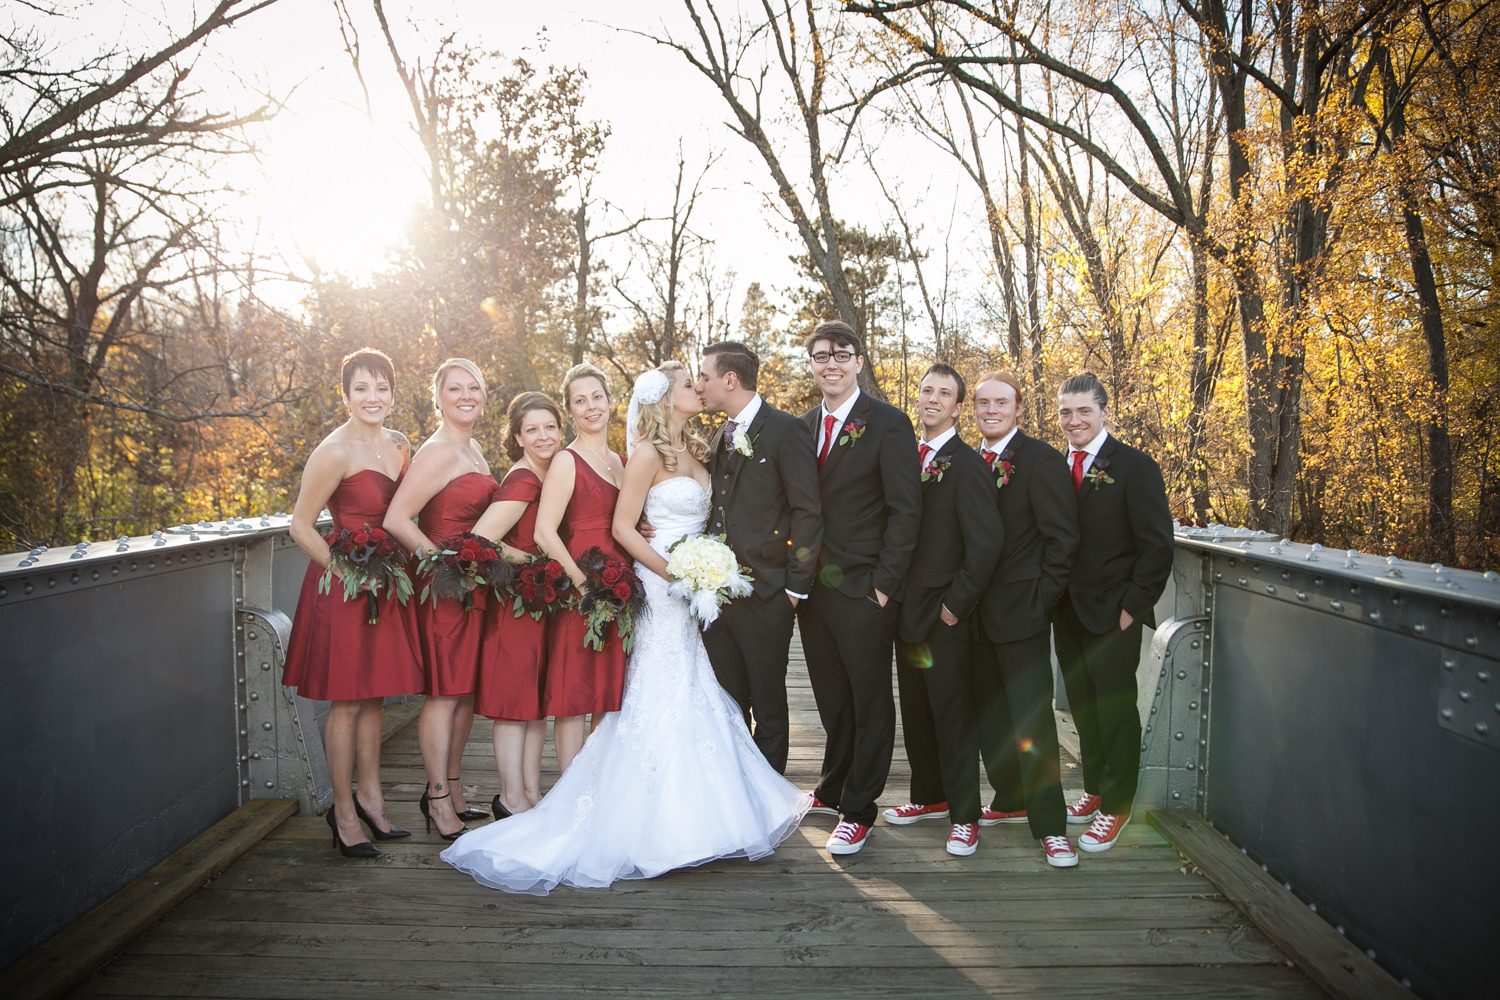 Wedding party portrait at a park in Wausau, WI.